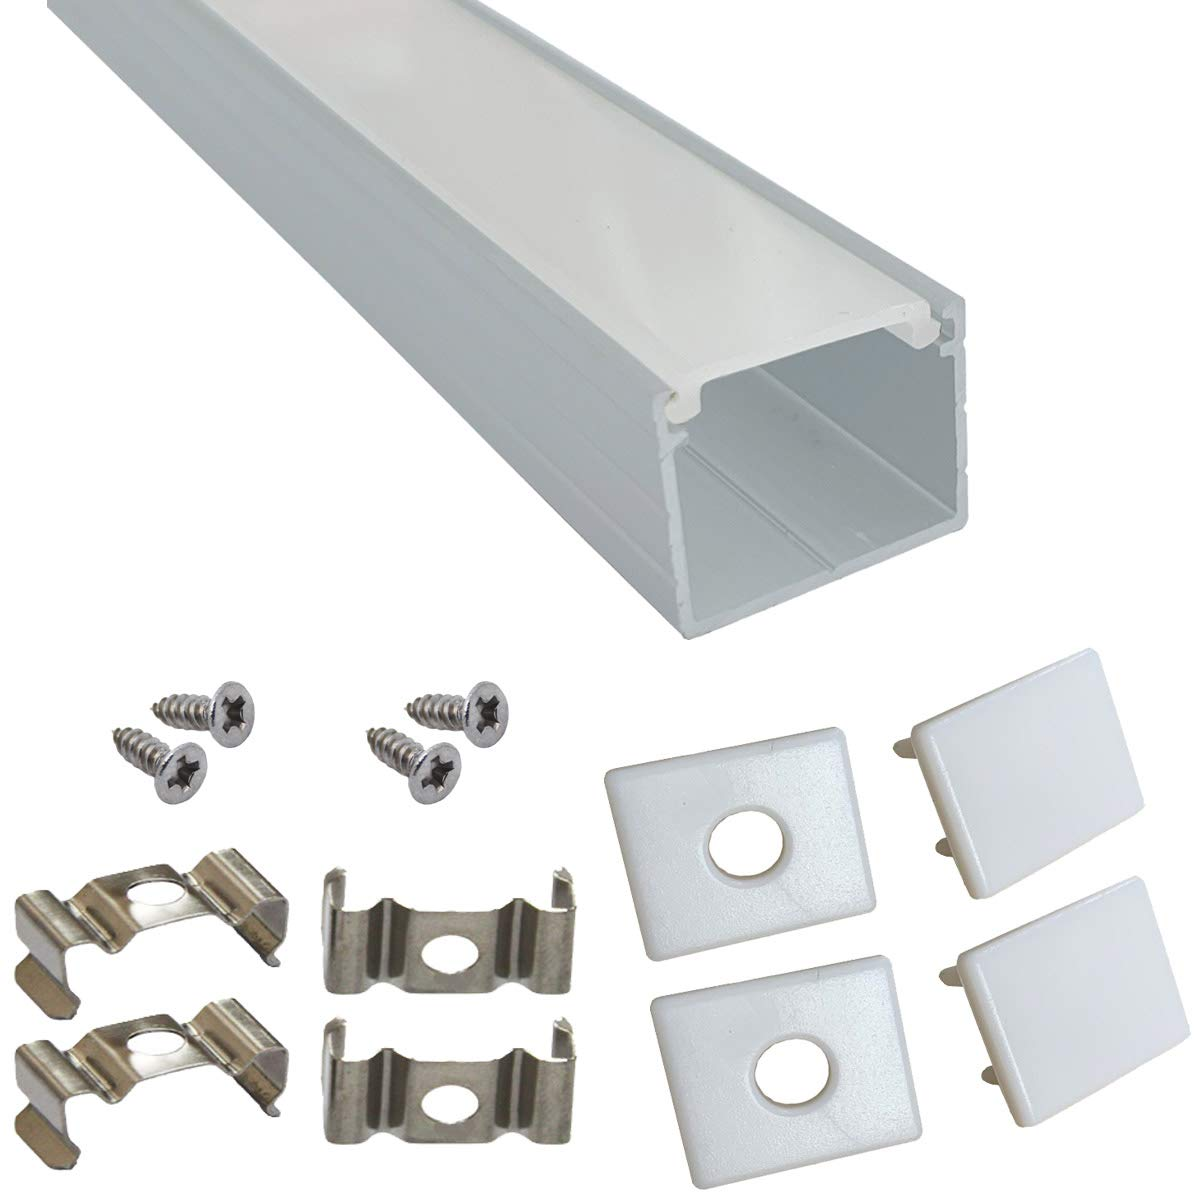 Litever 6-Pack 3.3ft/1 Meter 15x18mm U Shape Aluminum Channels for Lightstrip Plus and Other LED Strips. Diffused PC Covers, End Caps, Mounting Clips, Screws Included.